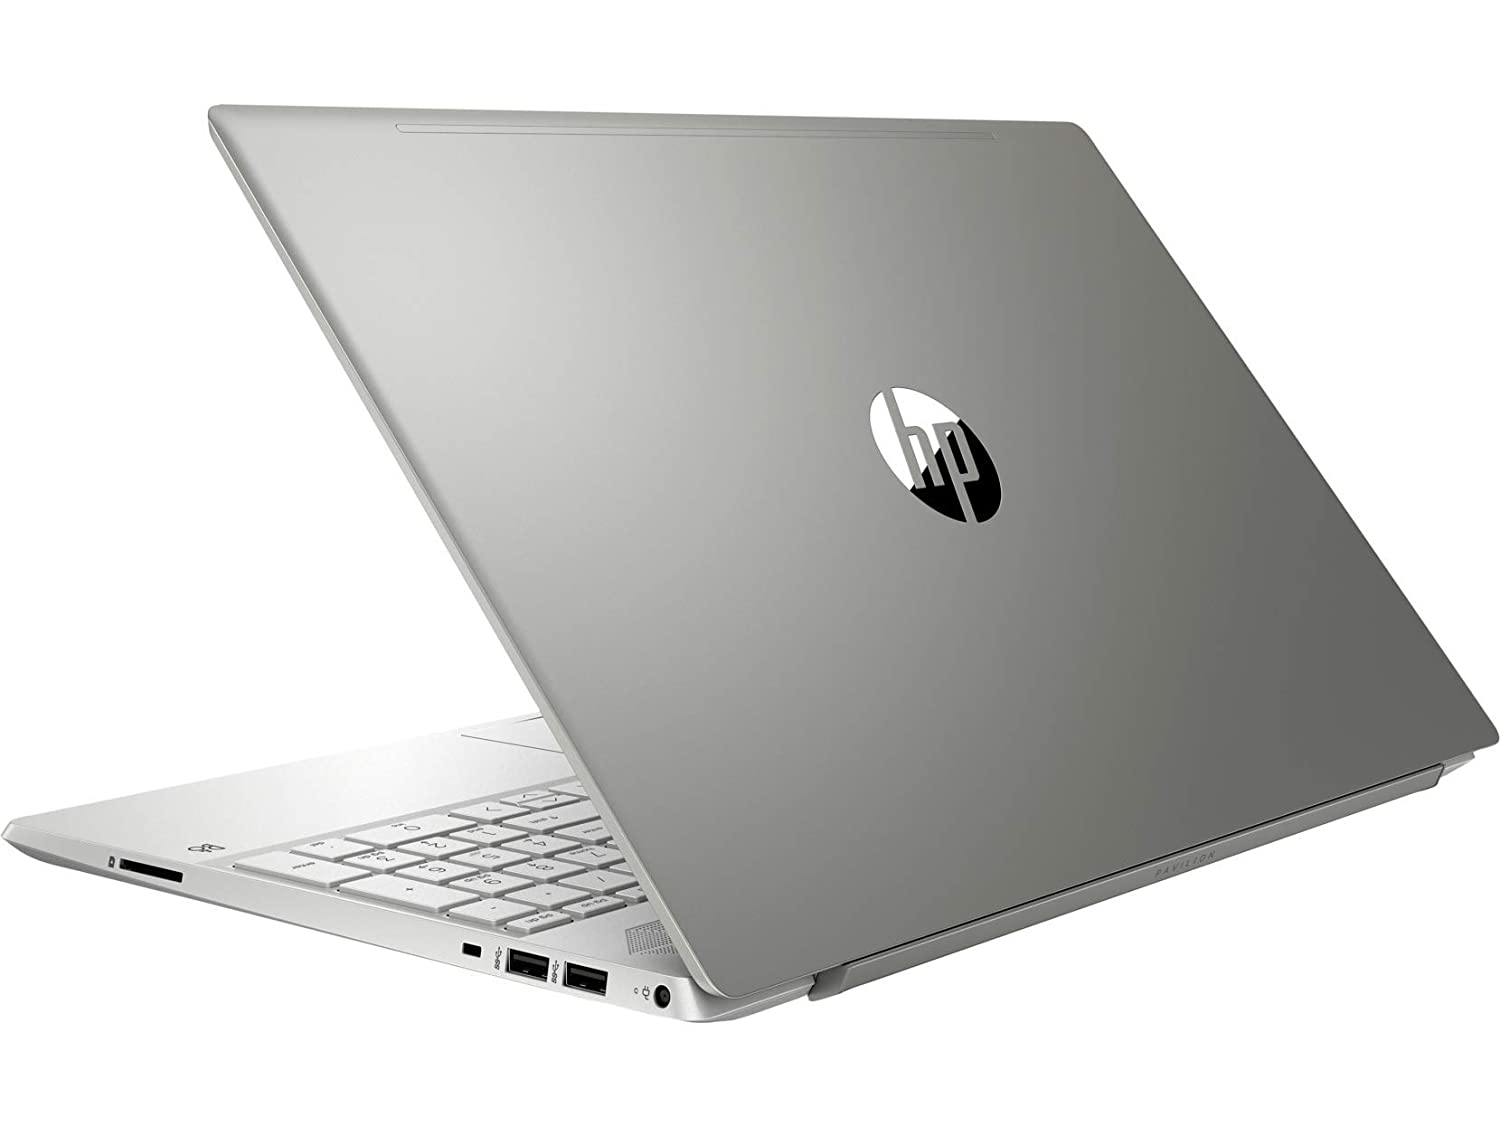 HP Pavilion 15.6-inch FHD Laptop (10th Gen I5-1035G1/8GB/1TB HDD + 256GB SSD/Windows 10/MS Office/2GB Graphics/Mineral Silver/1.85 Kg), 15-cs3006tx